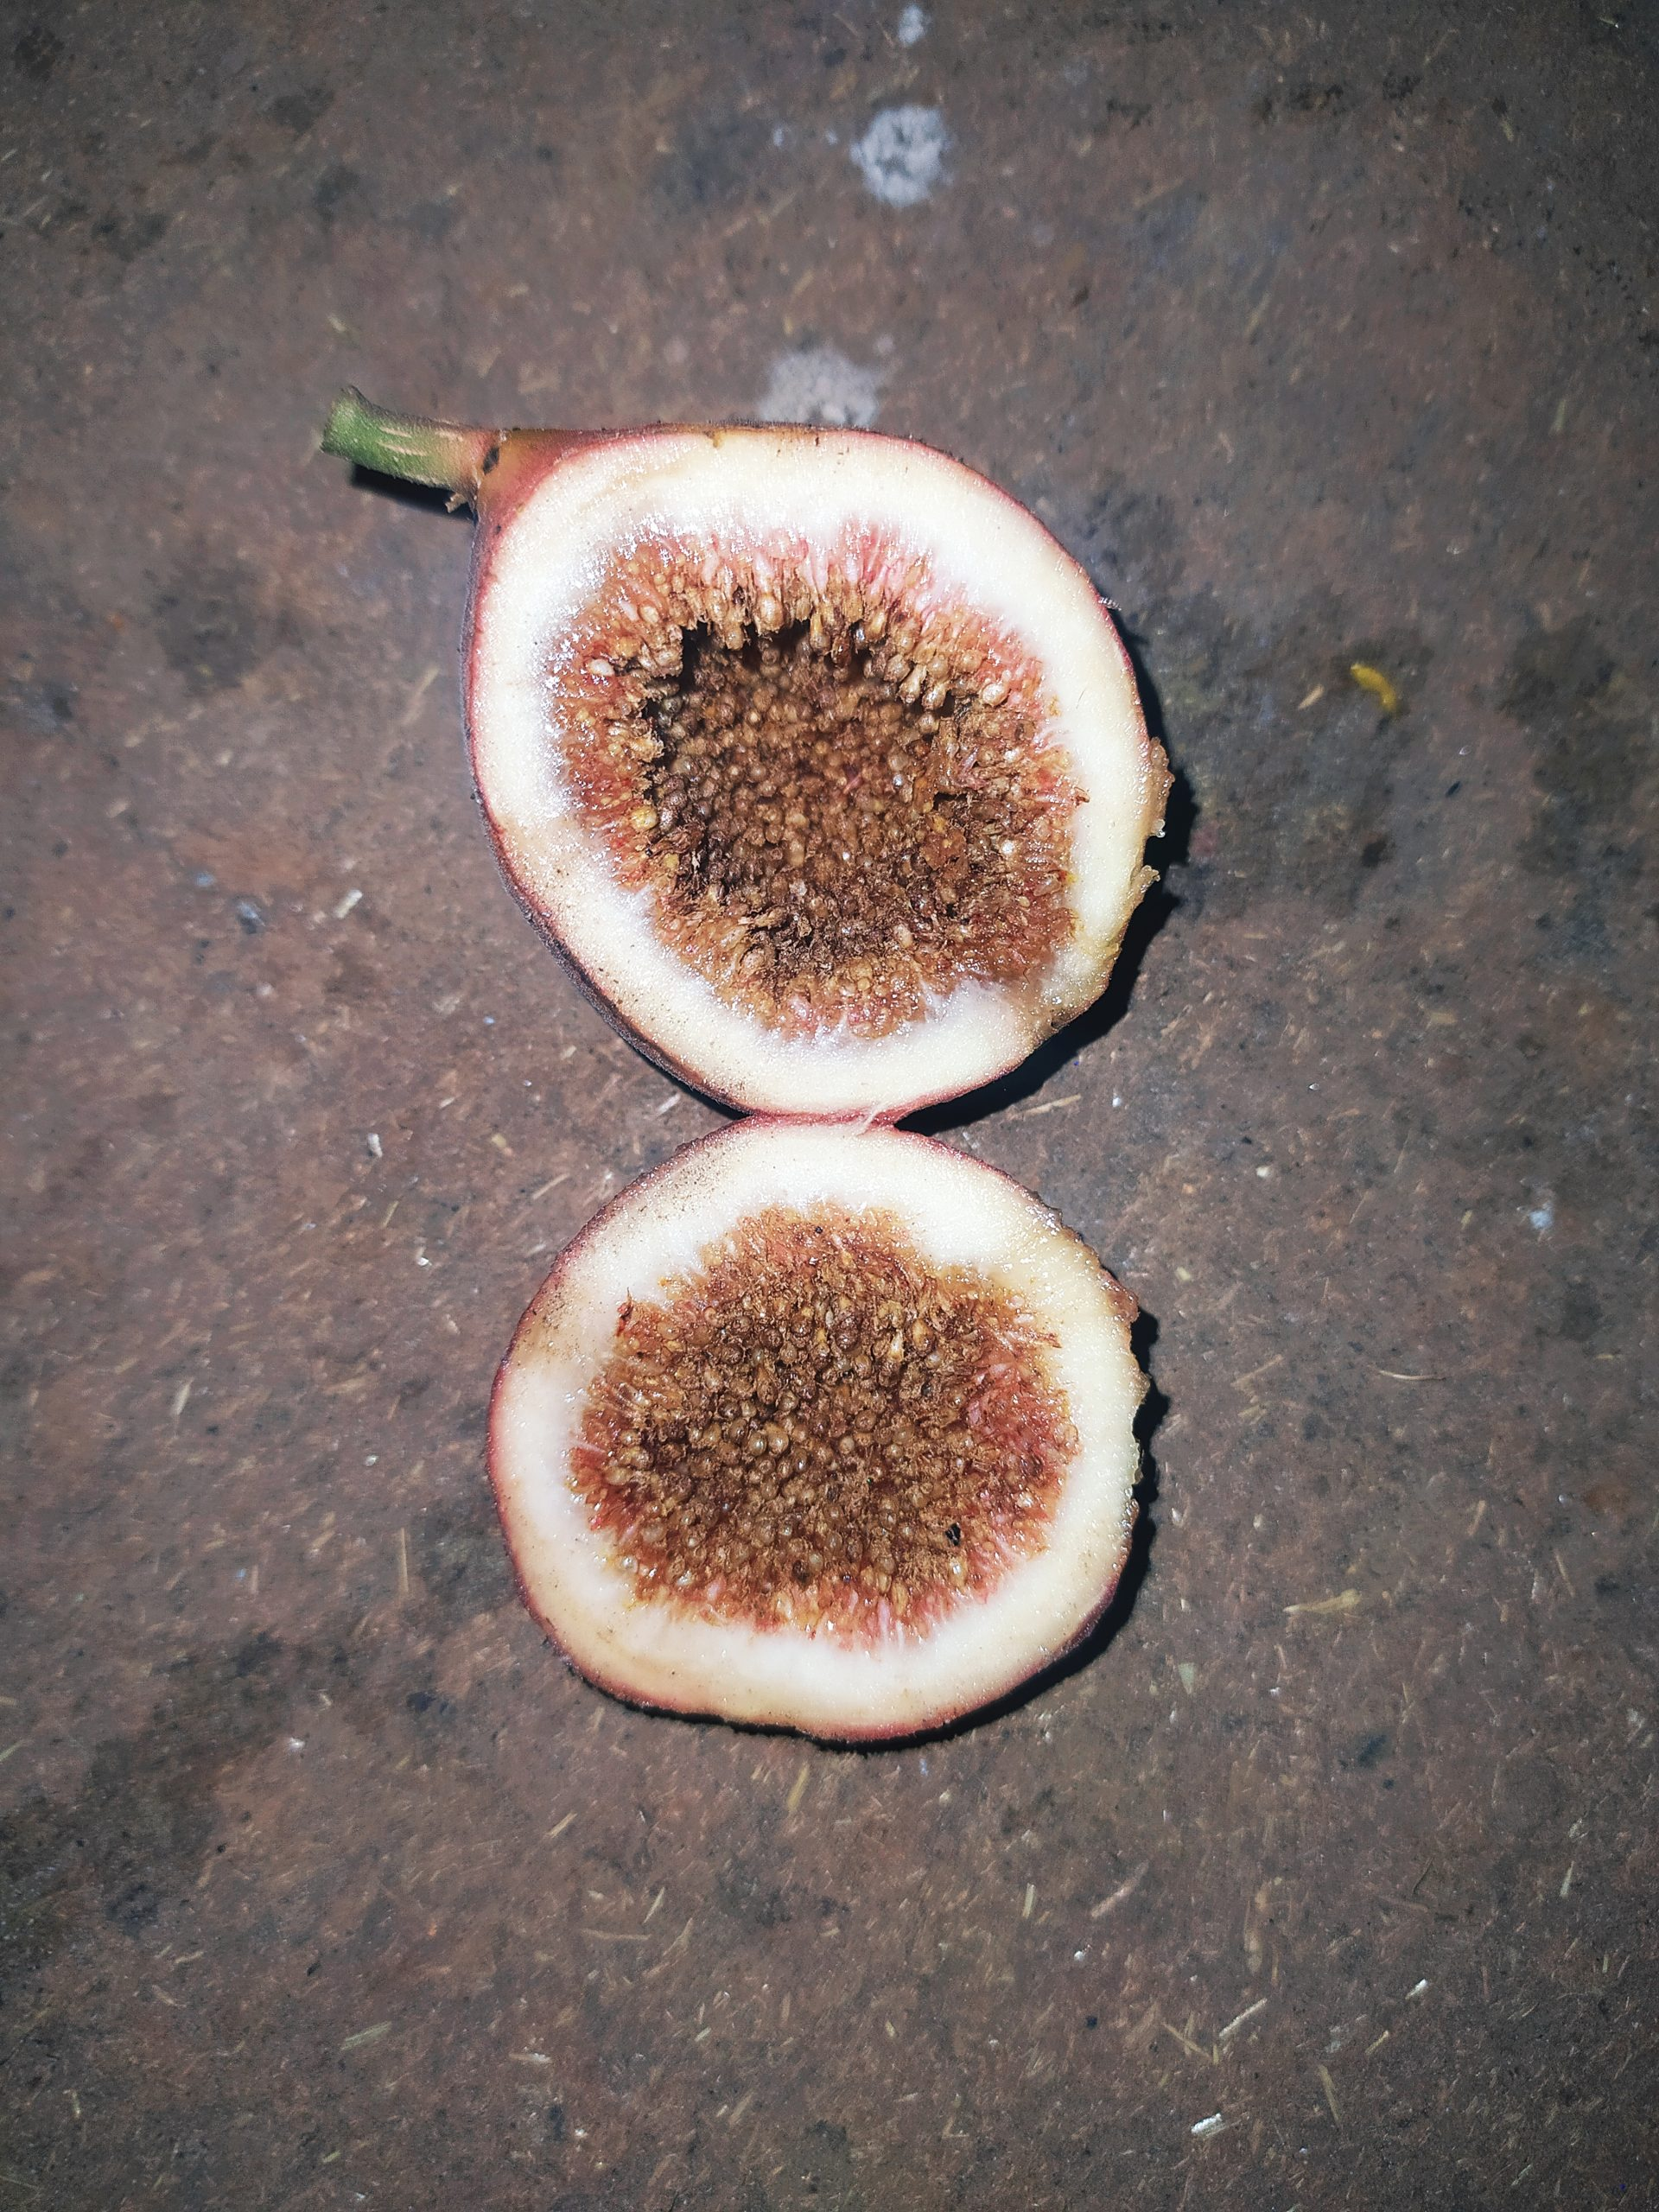 Fruit of fig tree